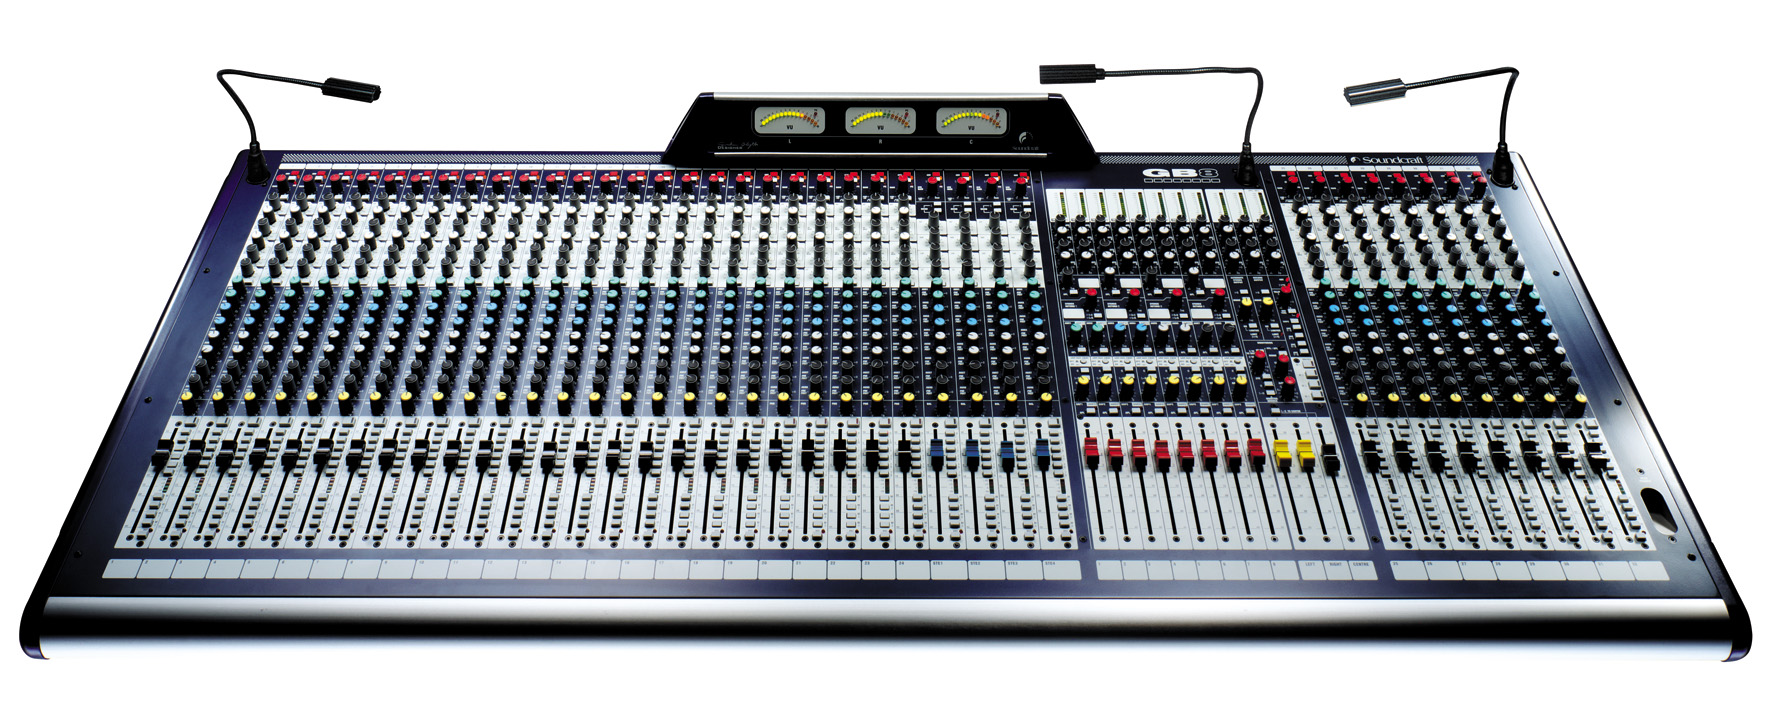 SOUNDCRAFT GB8/32 keverőpult